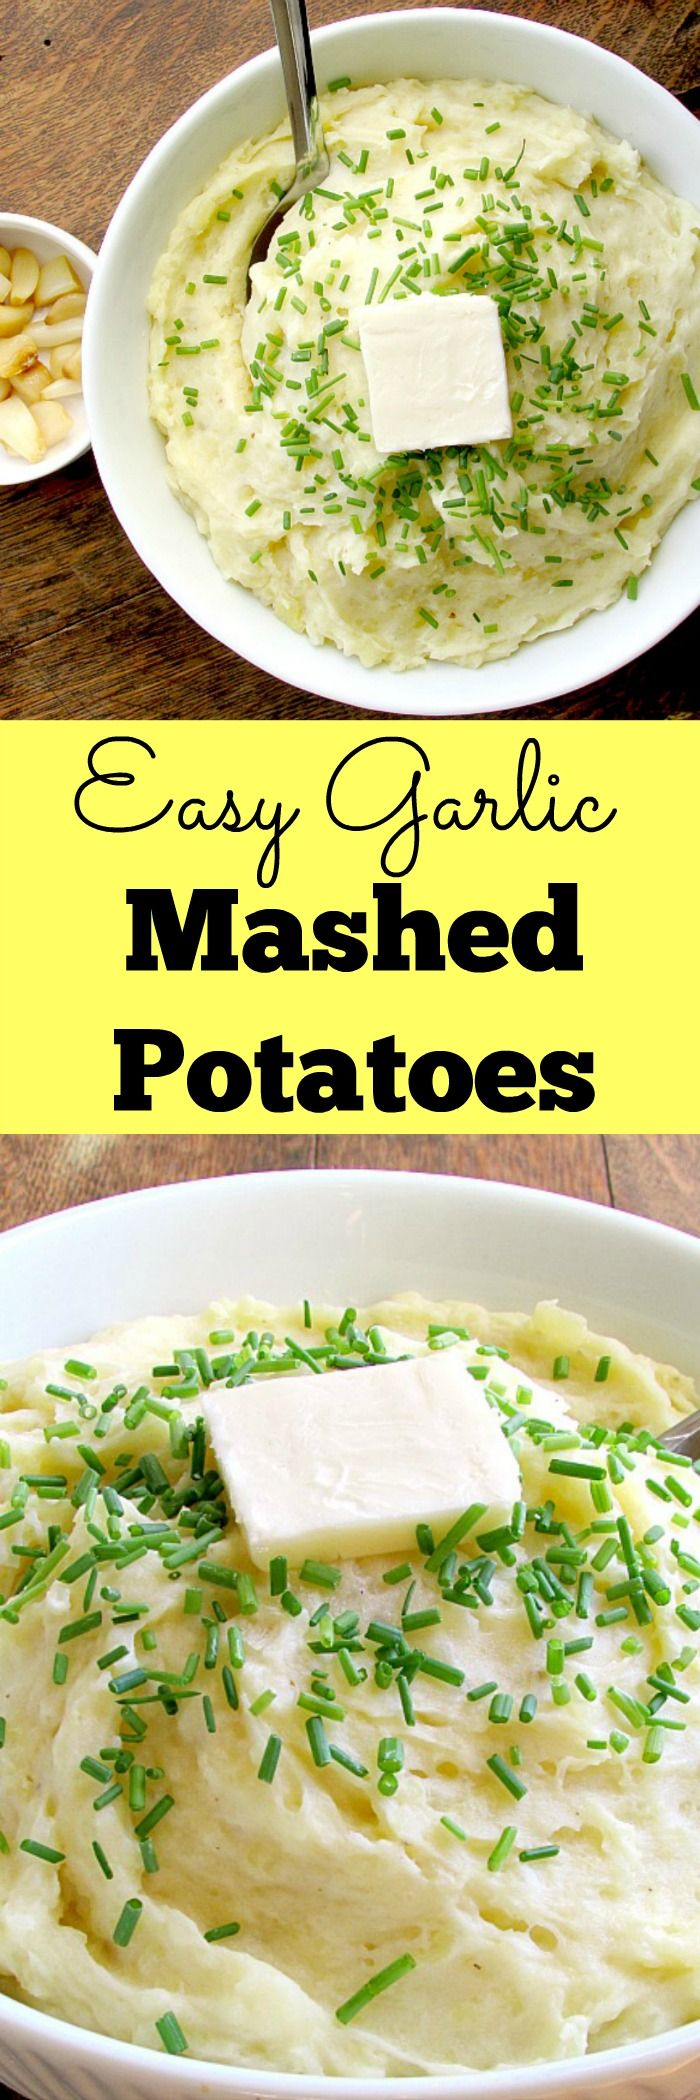 Easy Garlic Mashed Potatoes - These potatoes are so much more flavorful than regular mashed potatoes, and with just a little bit more effort! It only takes 6 ingredients! | www.louloubiscuit.com